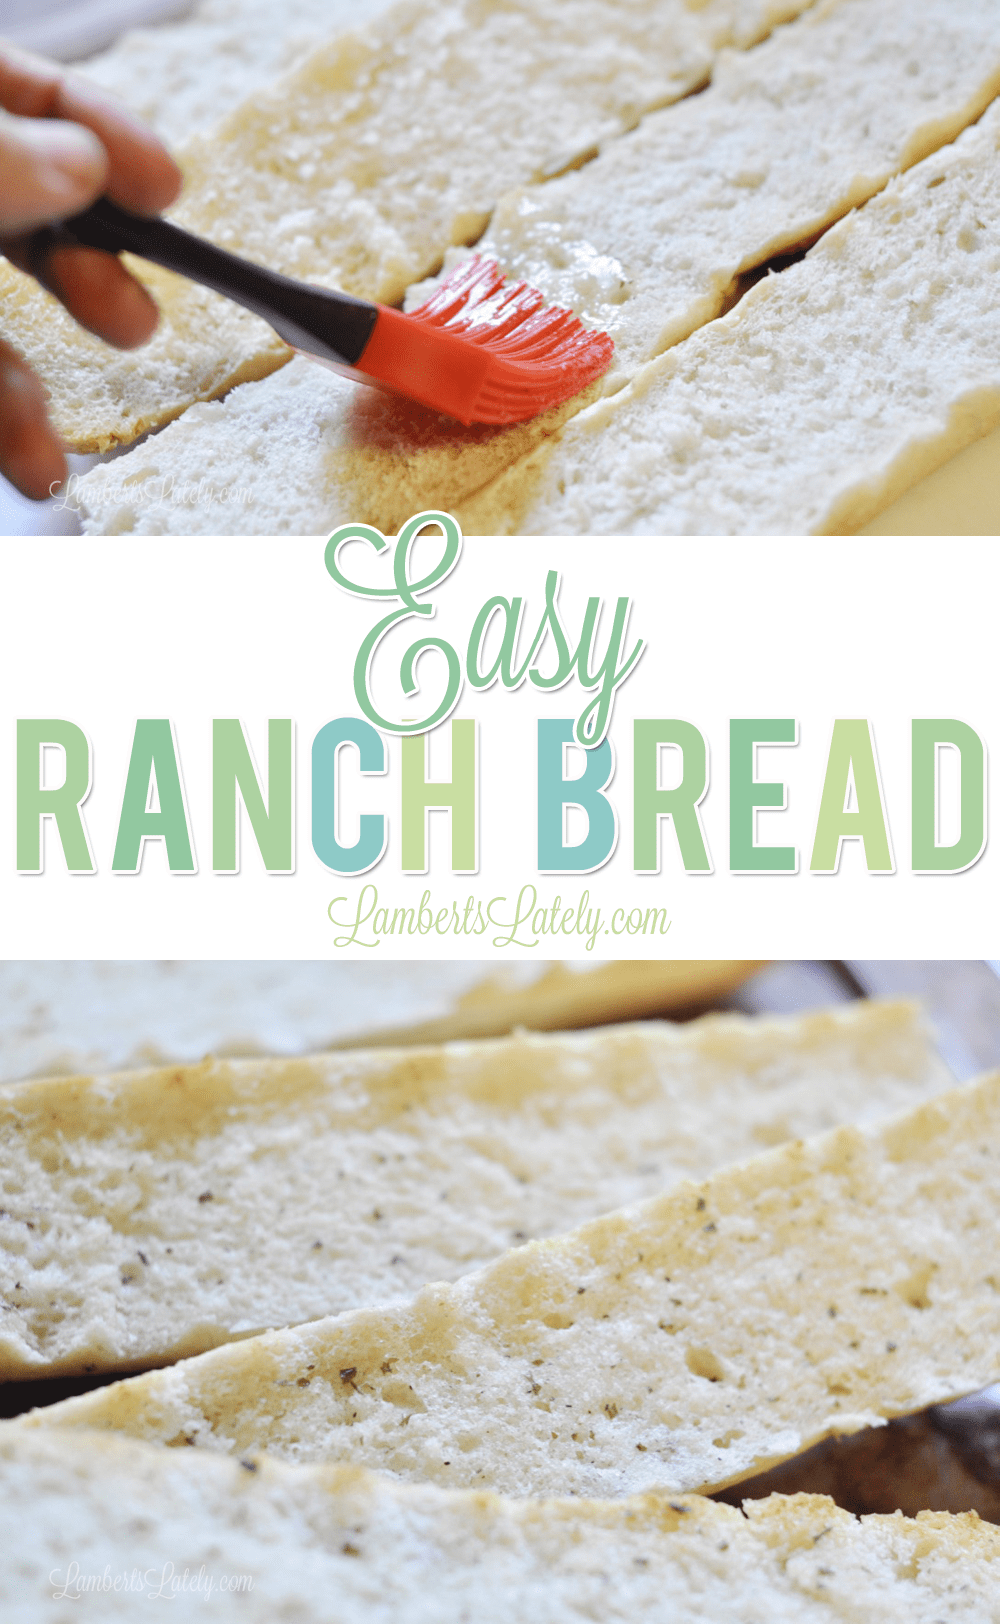 Easy Ranch Bread is a great weeknight last-minute side dish!  Uses bright flavors with rich butter to make crispy French bread with the perfect flavor.